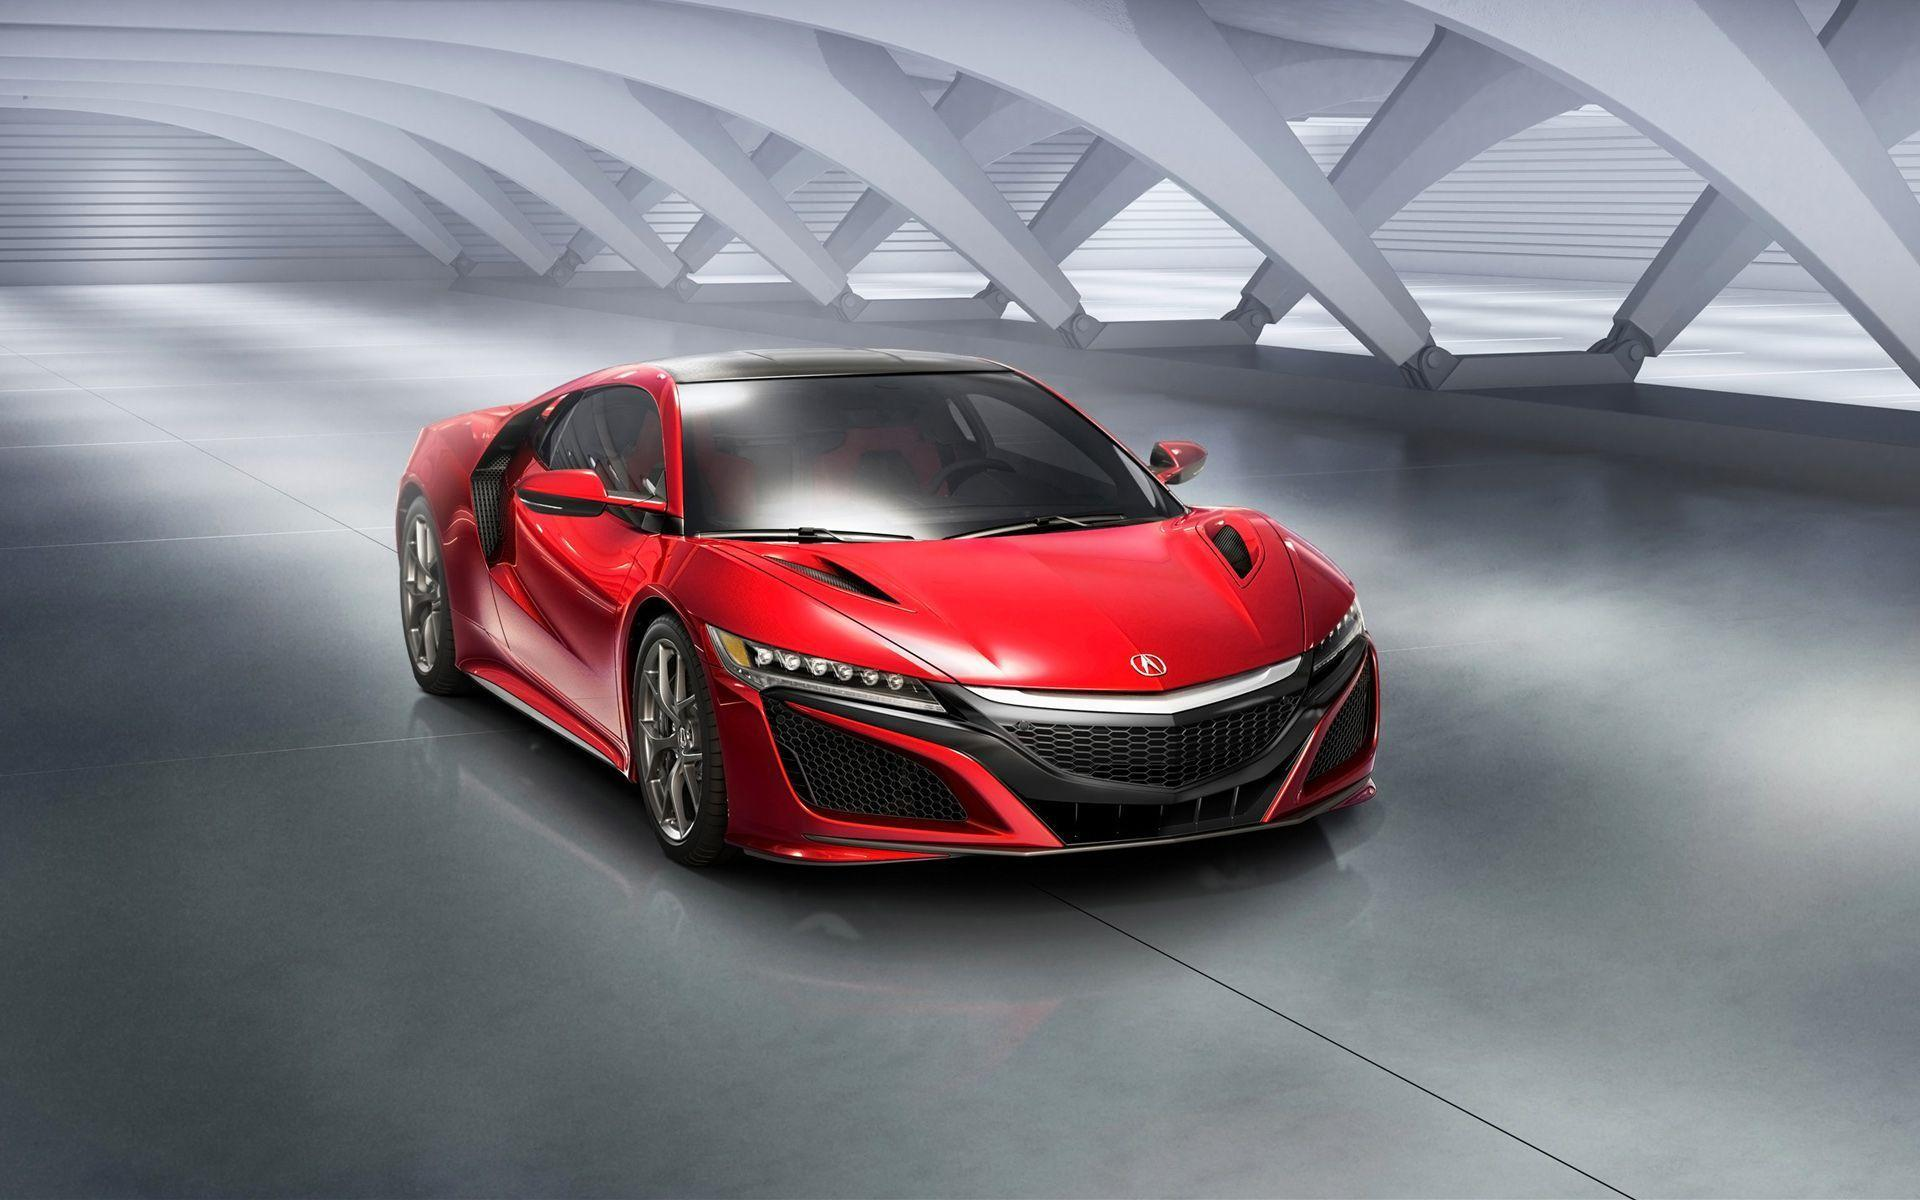 New ACURA NSX 2016 Red Car Wallpapers